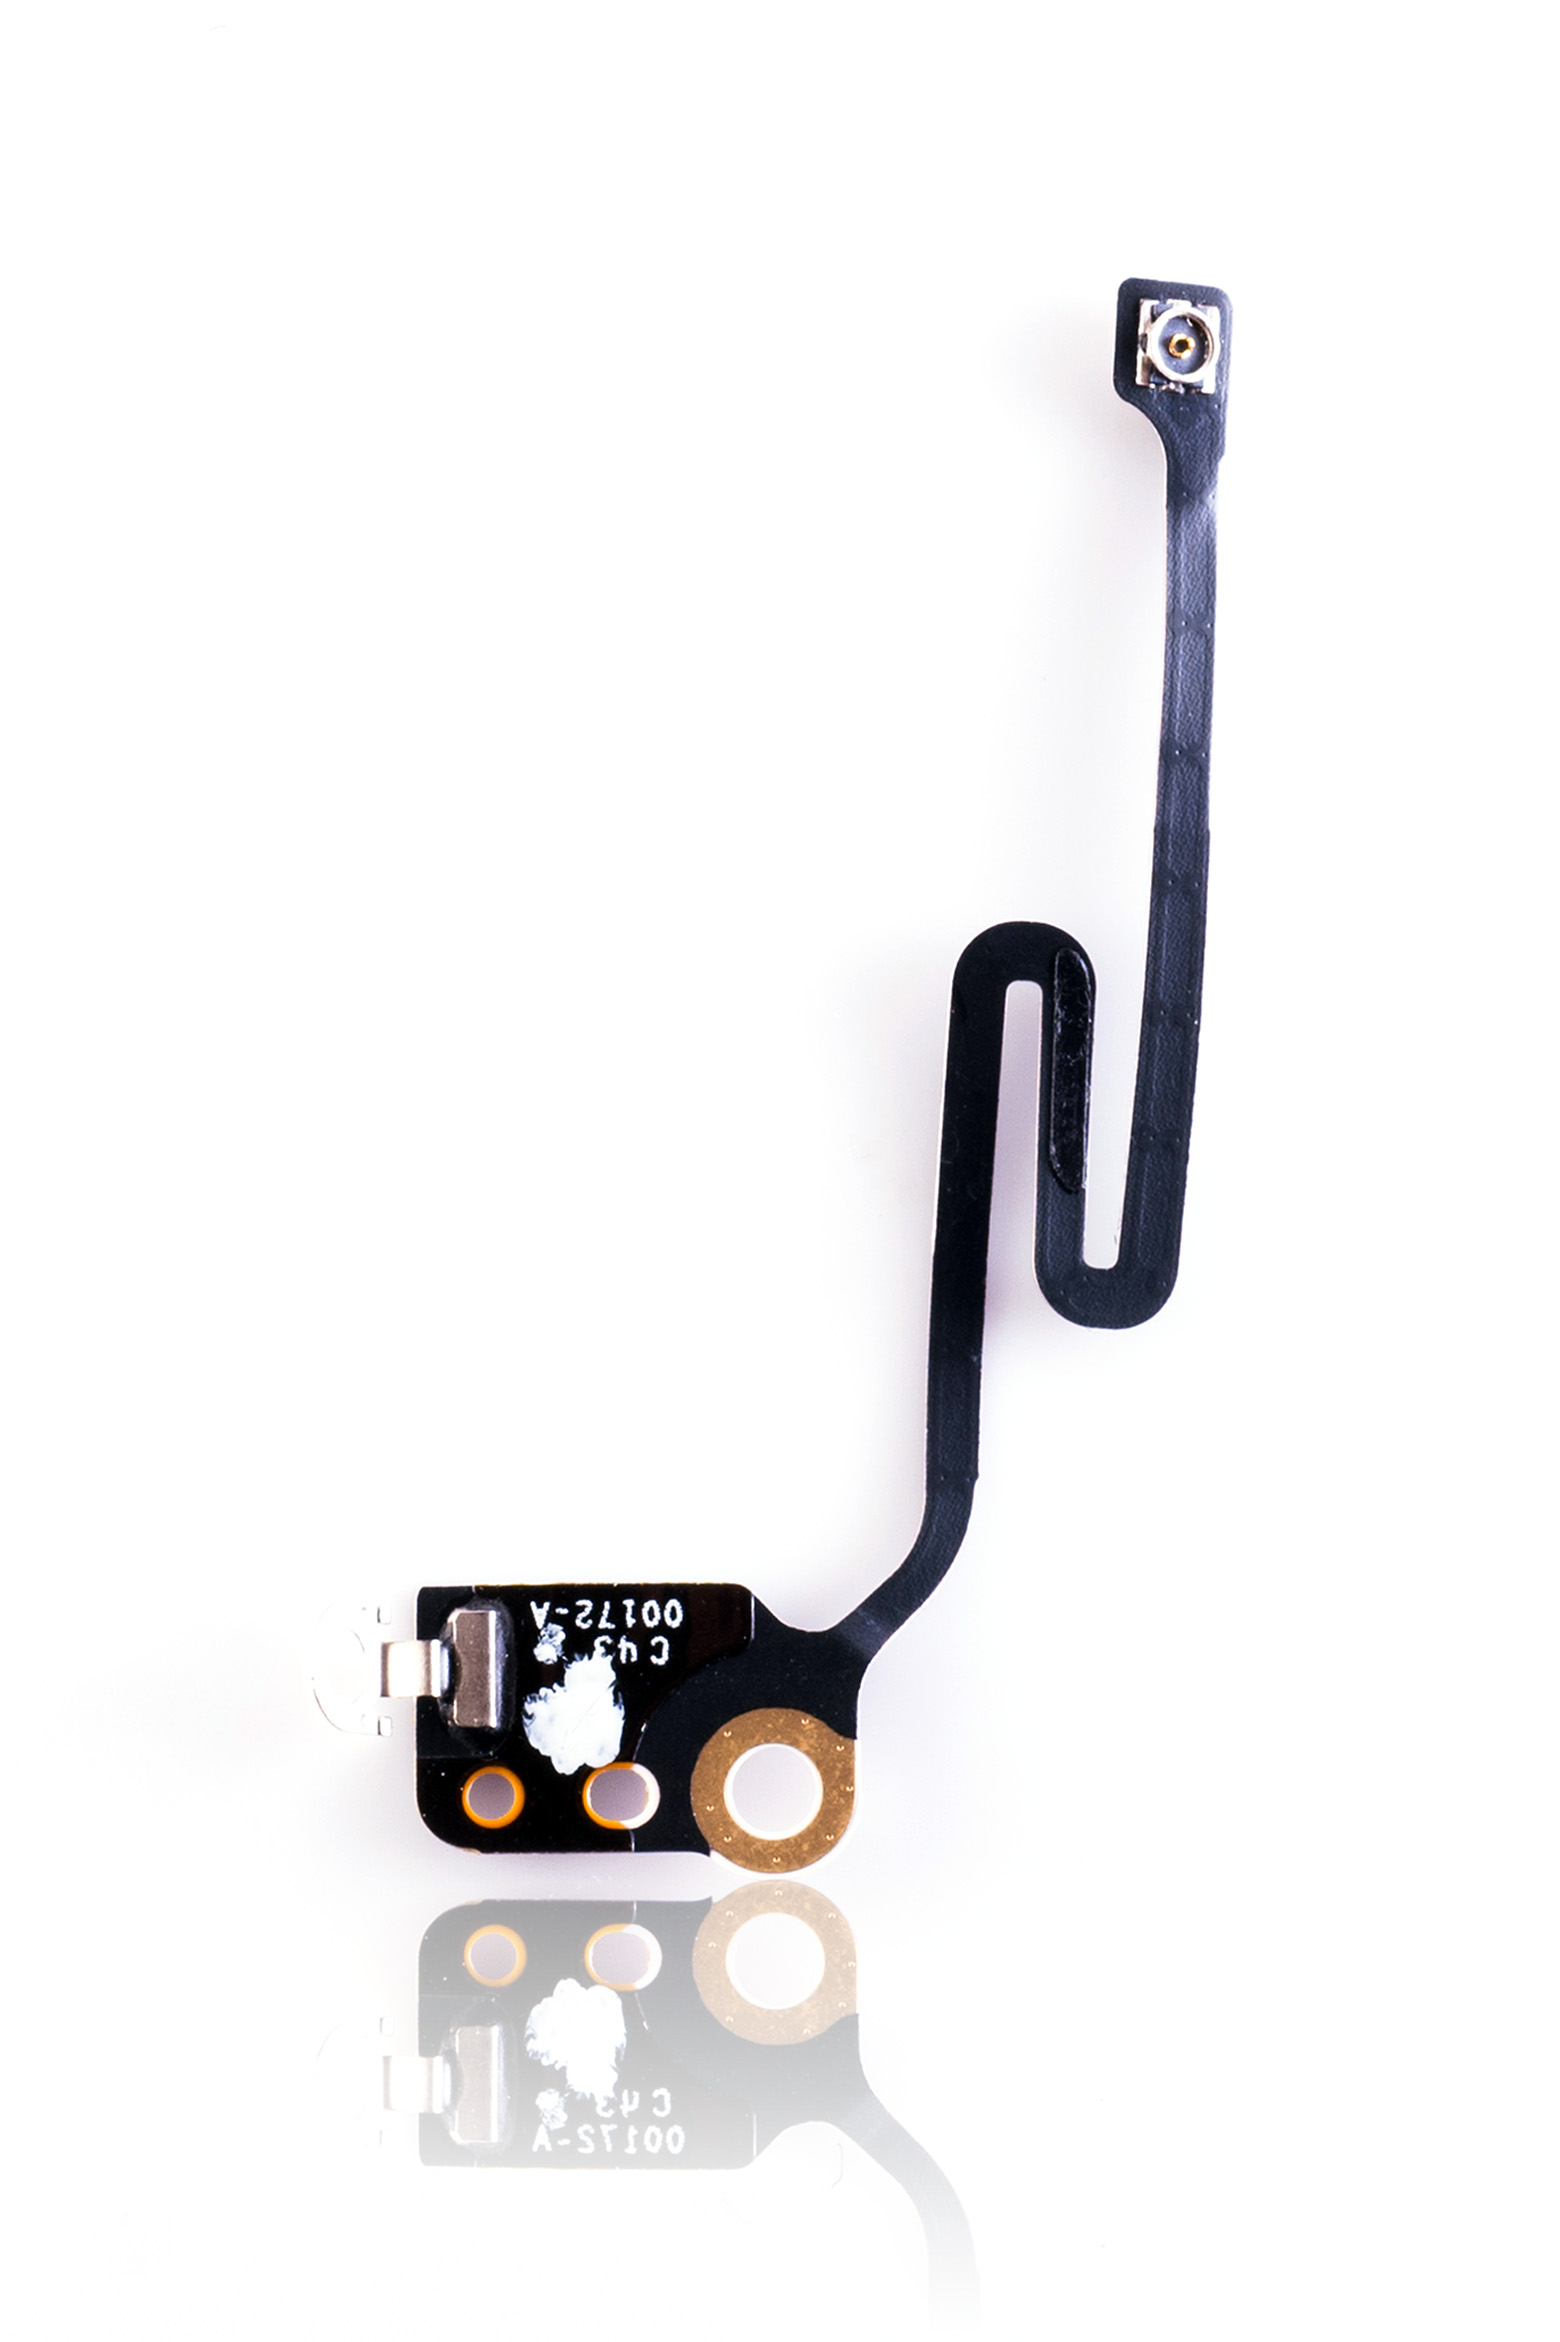 IPHONE 6S PLUS WIFI ANTENNA (BEHIND THE BACK OF MOTHERBOARD)